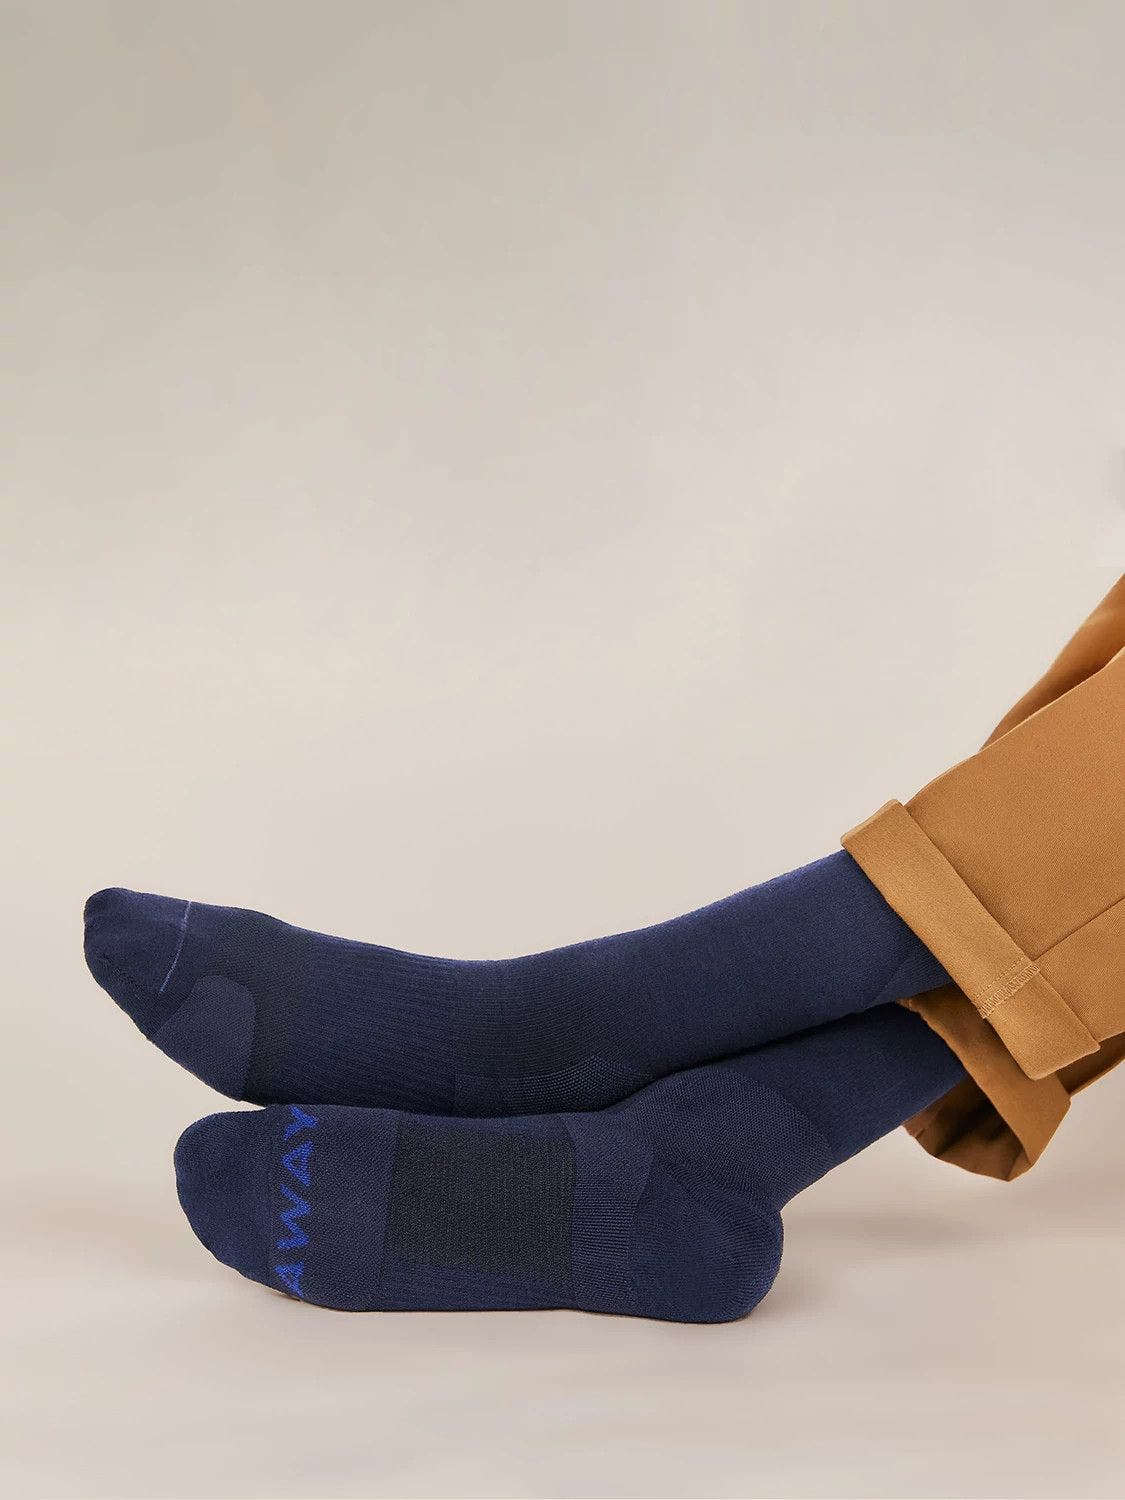 A person wearing navy blue Away compression socks for travel with legs stretched out.